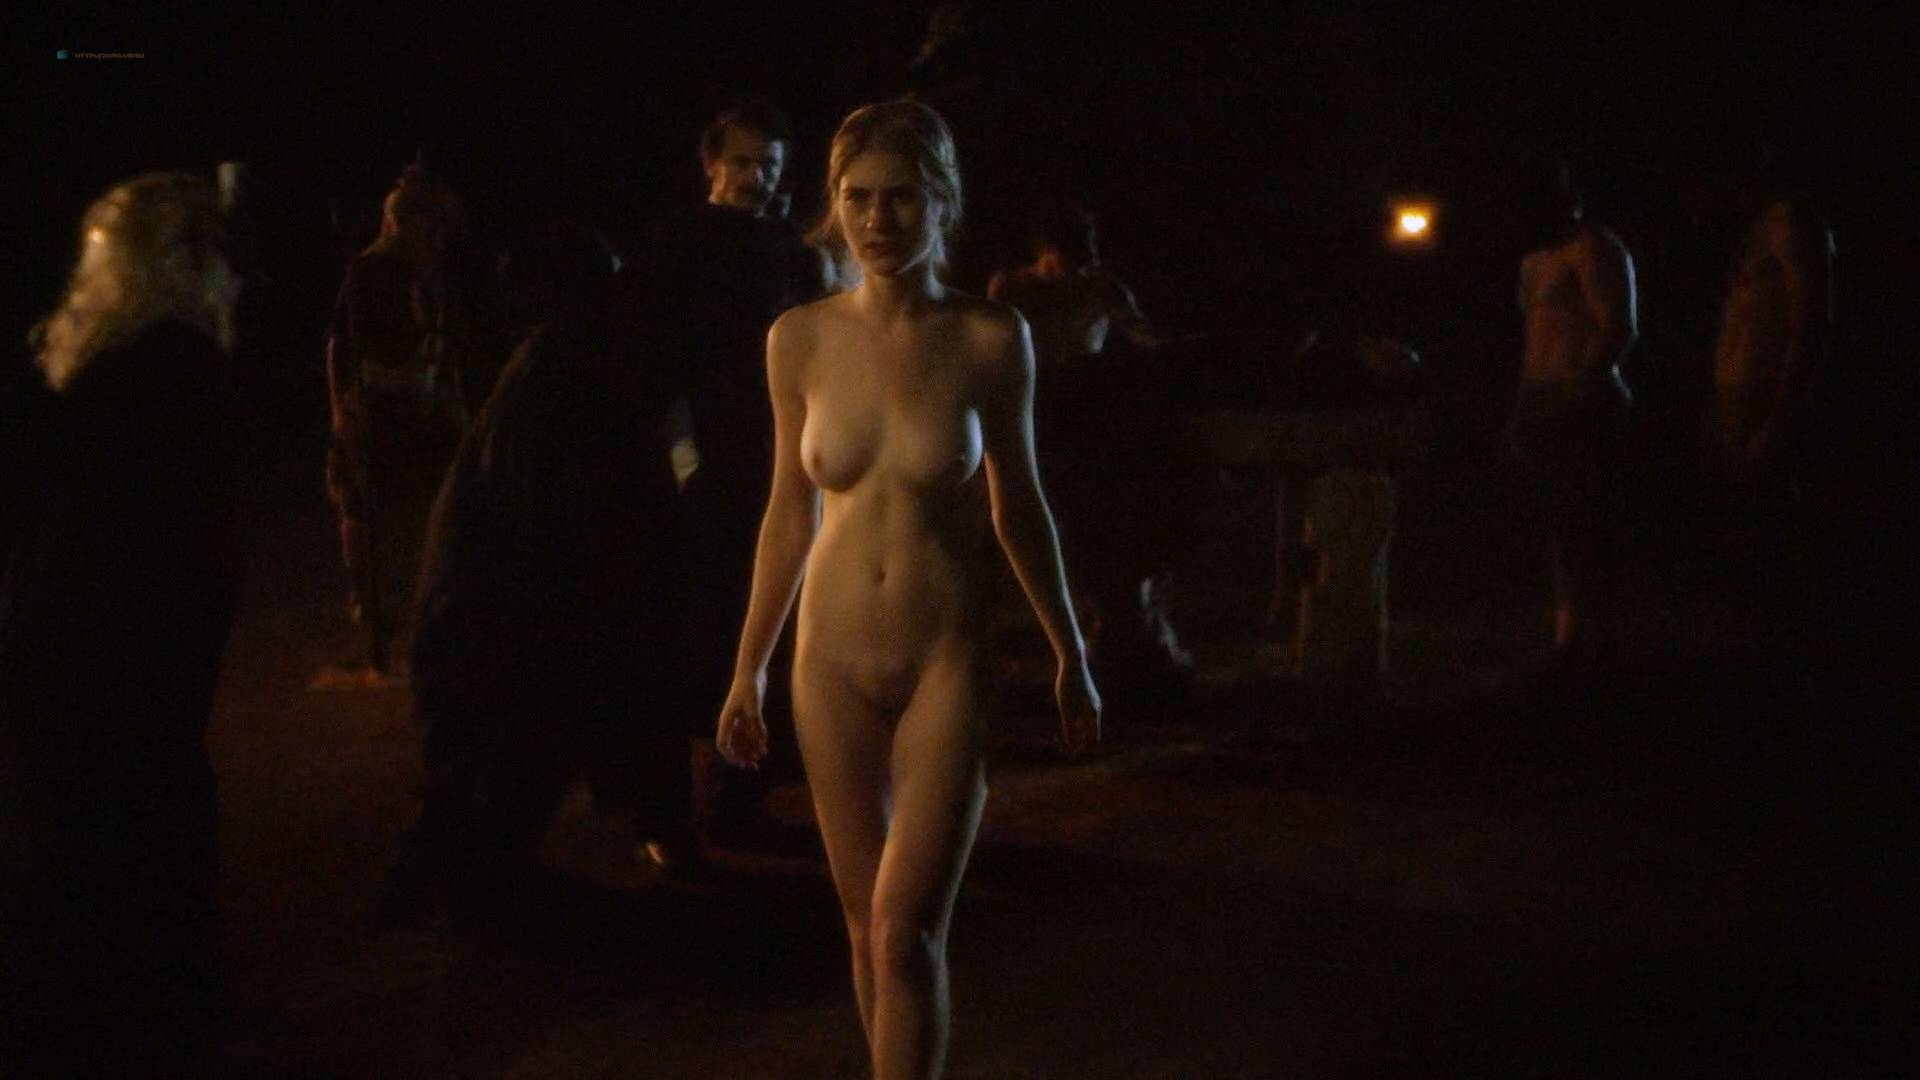 Allie Gallerani nude full frontal Amber Coney, Zoe Bleu, and other's nude too - The Institute (2017) HD 1080p Web (13)